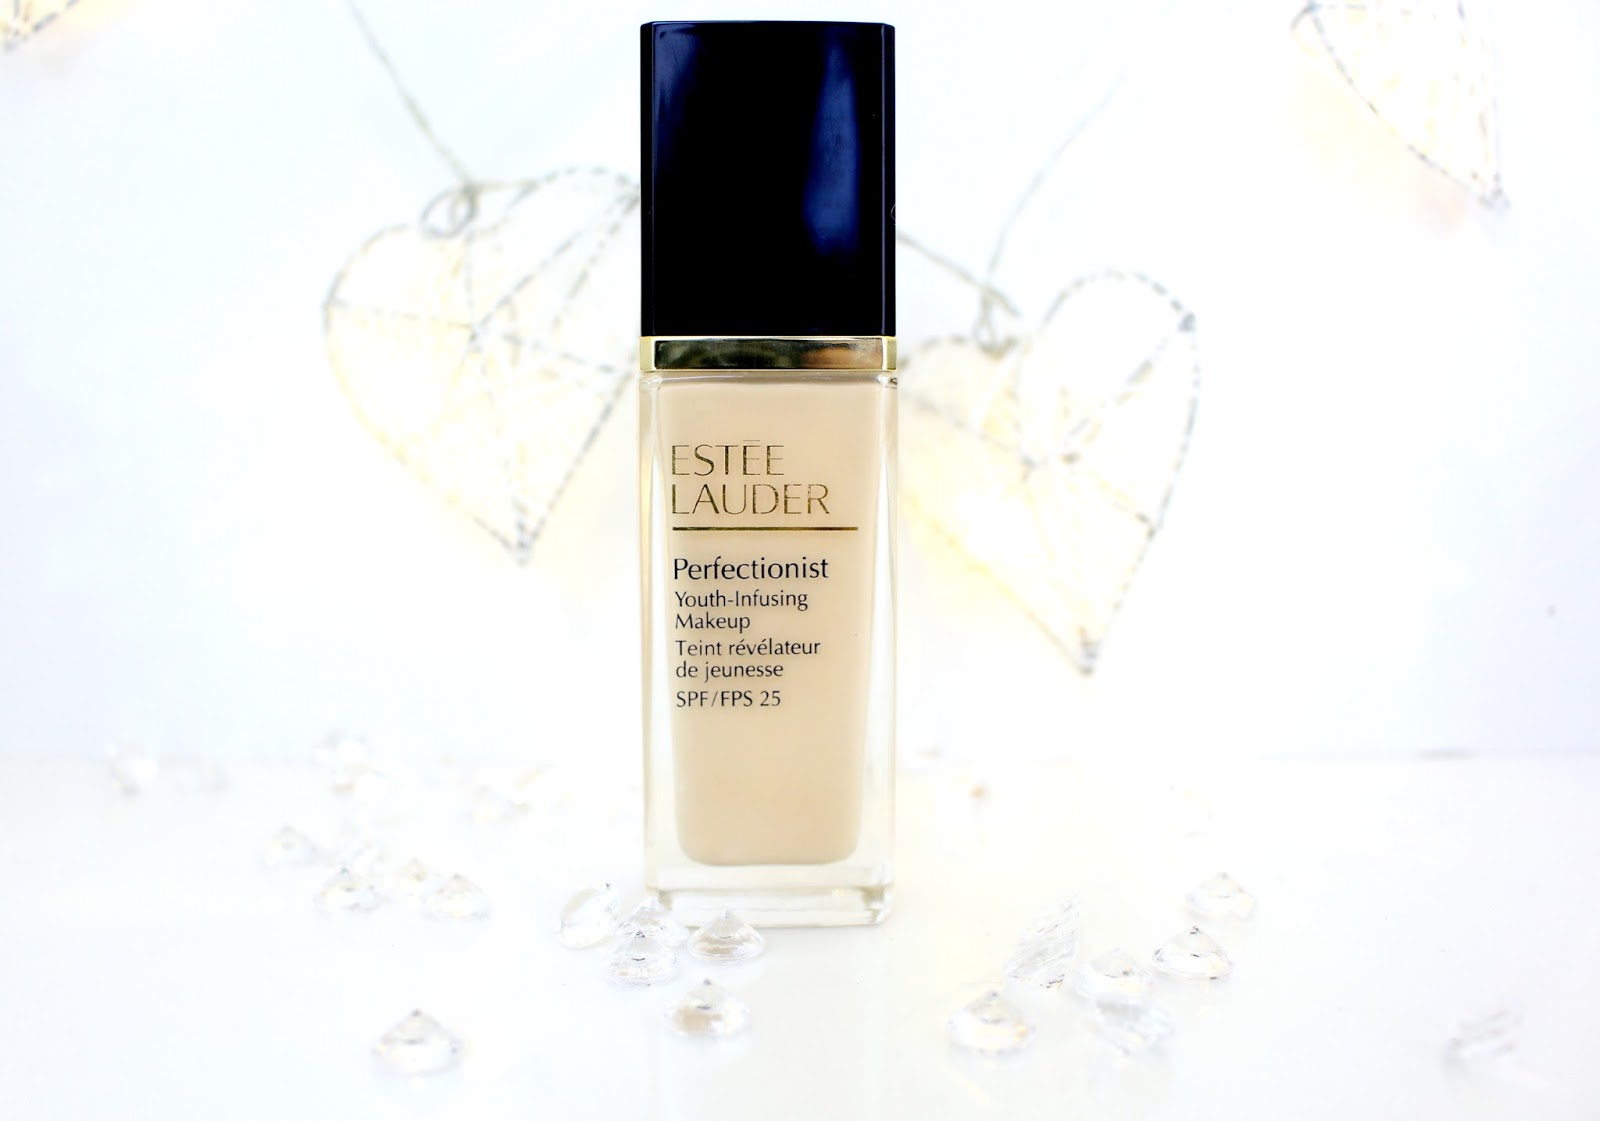 Estee Lauder Perfectionist Youth-Infusing Makeup SPF 25 Review